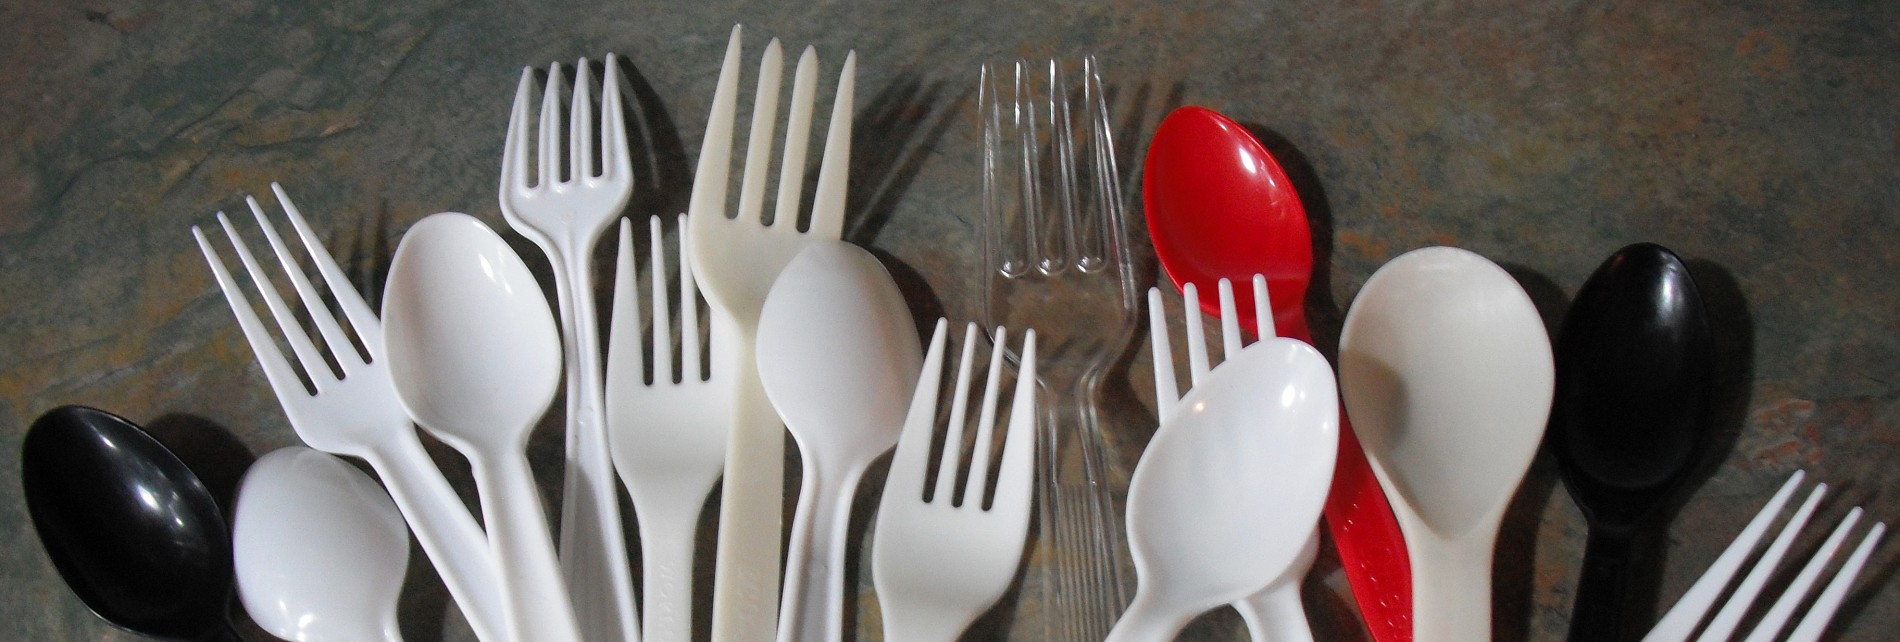 Our 11 Favourite Alternatives To Disposable Plastic Items